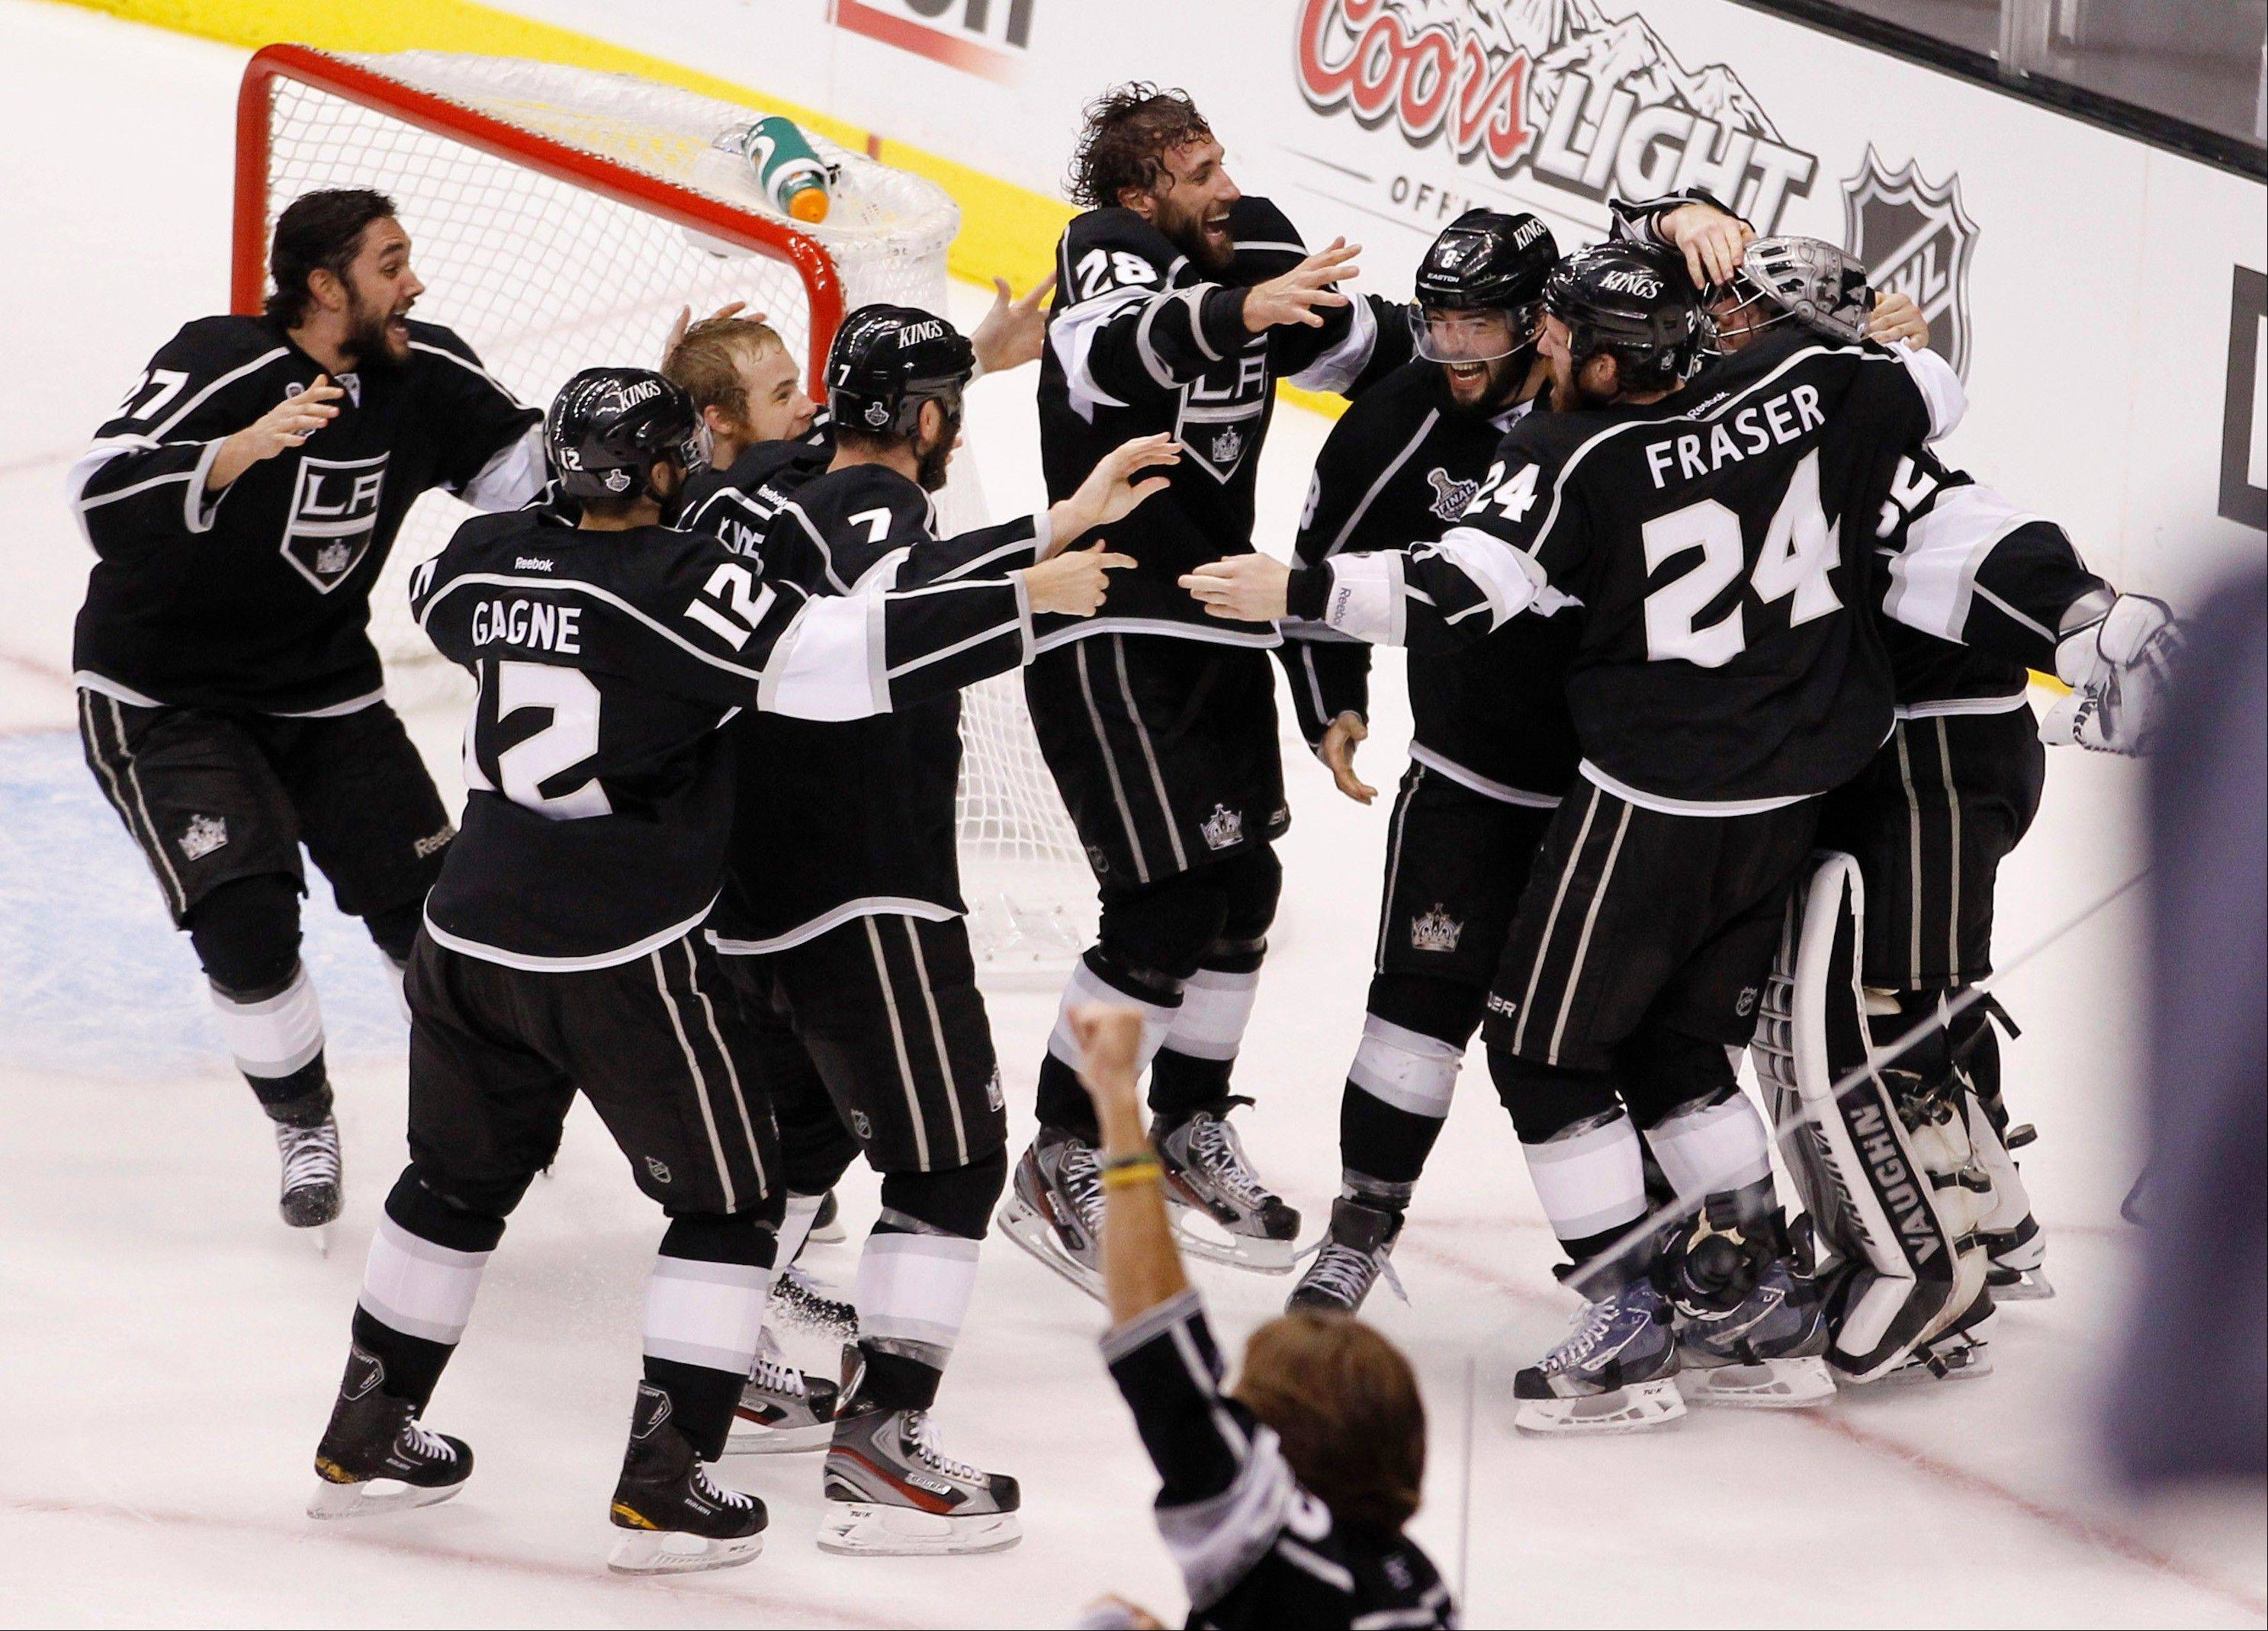 The Los Angeles Kings react as time runs off the clock to beat the New Jersey Devils 6-1 during Game 6 of the Stanley Cup Finals.